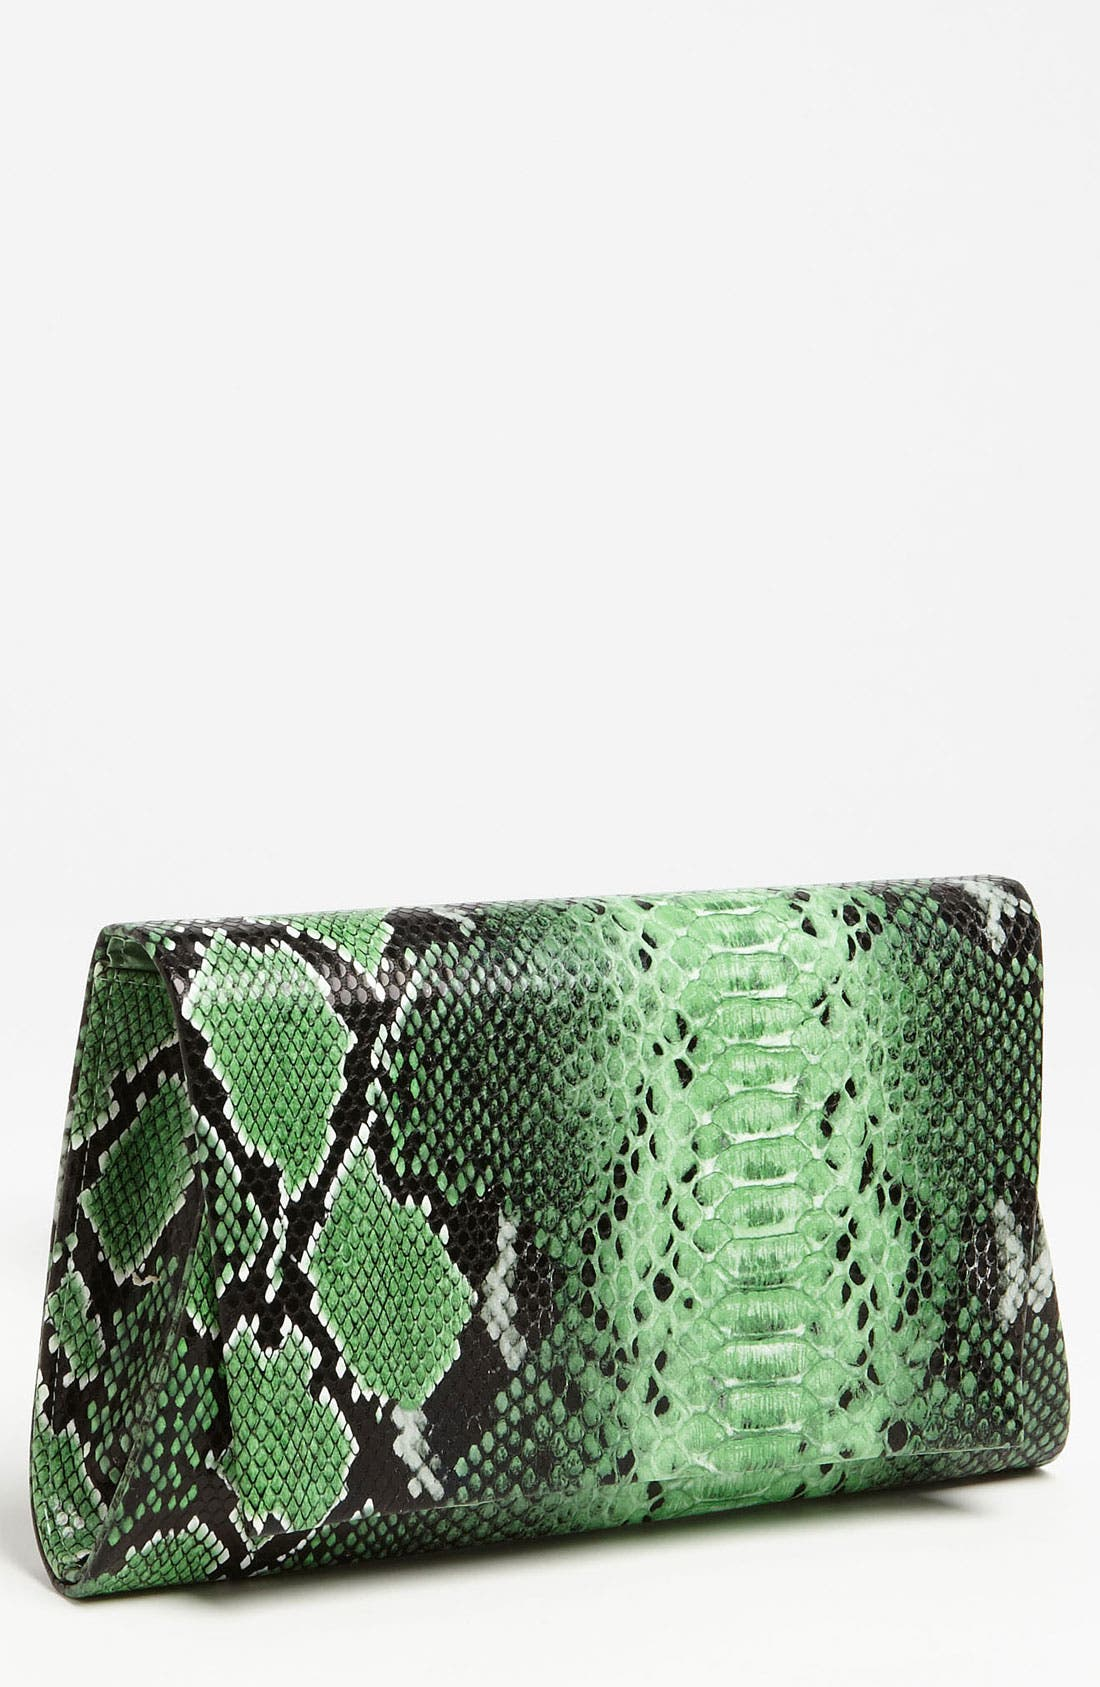 Main Image - Natasha Couture Foldover Snake Embossed Clutch